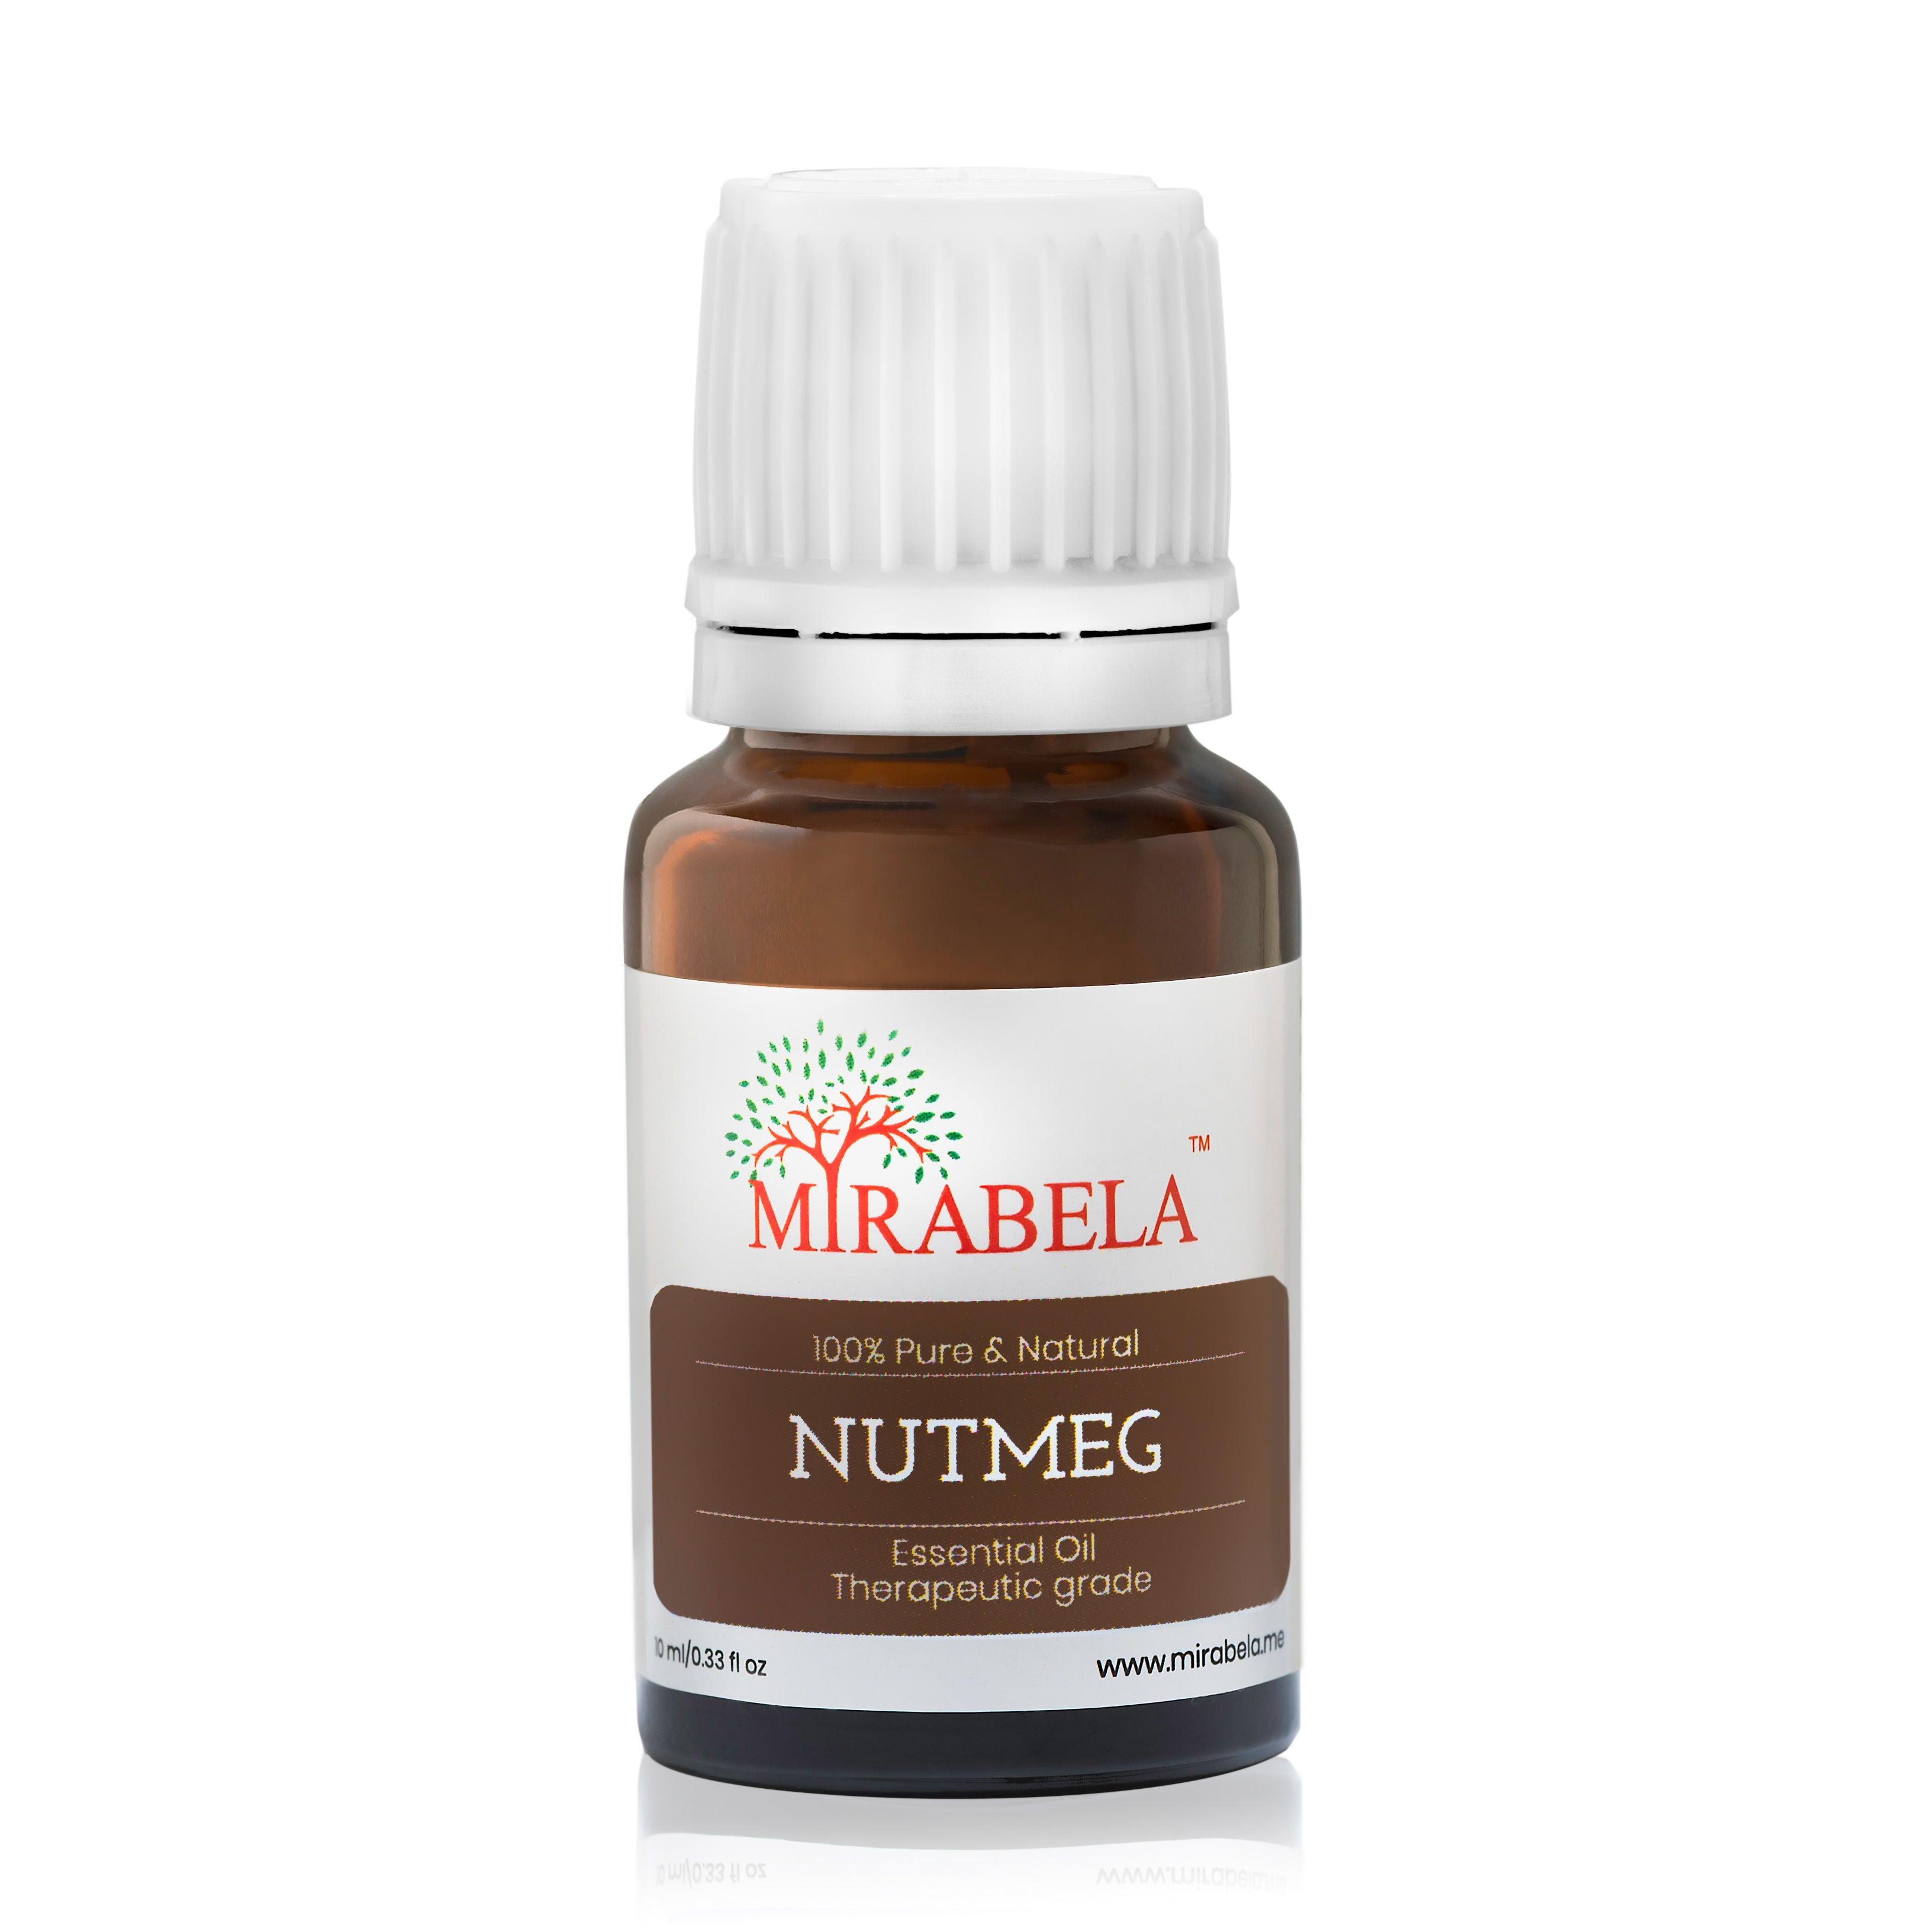 Mirabela Nutmeg Essential Oil 10ml